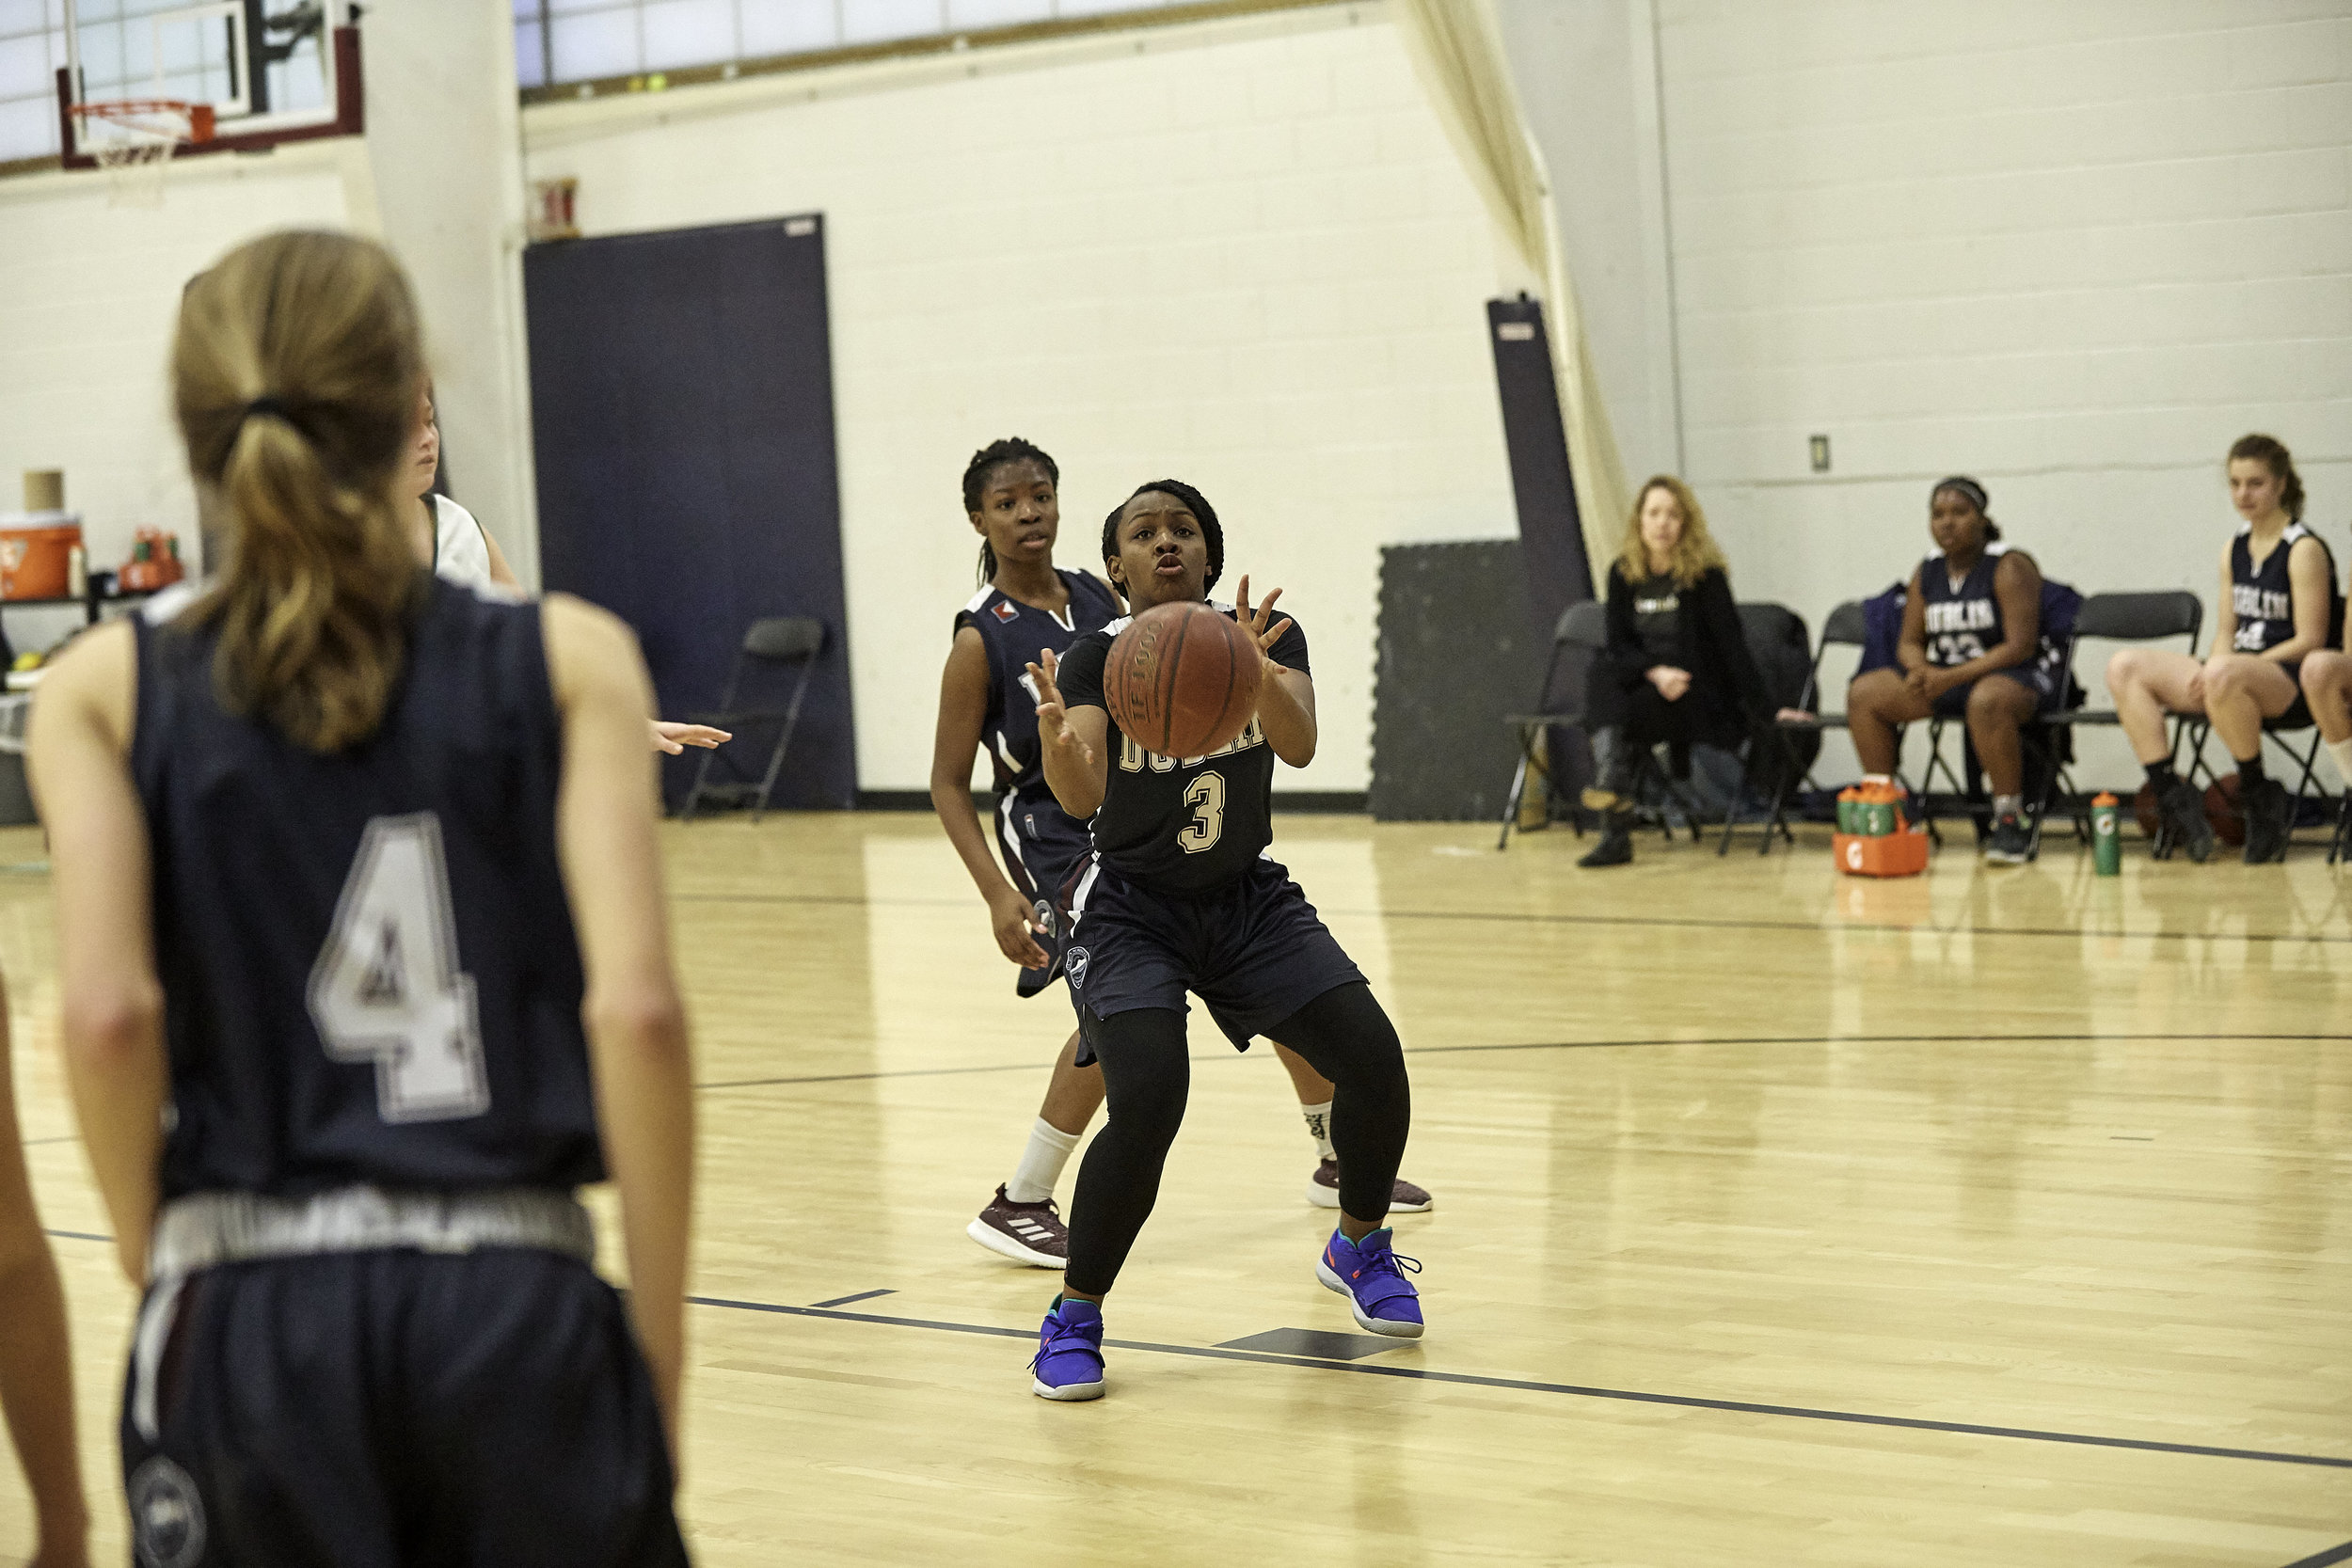 Basketball vs Putney School, February 9, 2019 - 167528.jpg